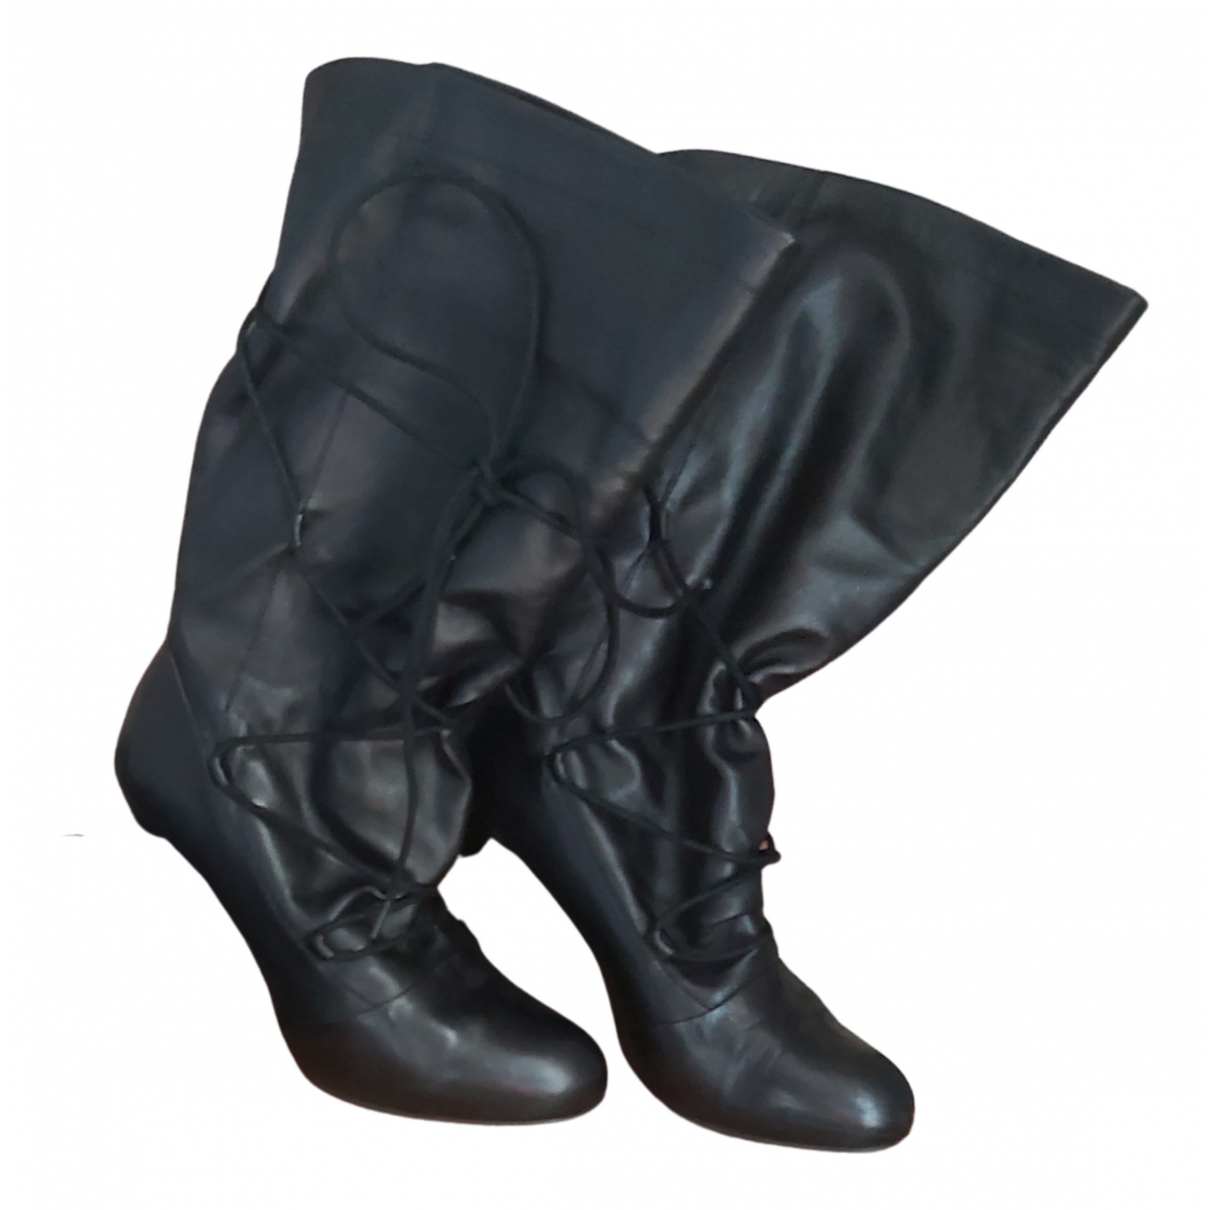 Armani Jeans N Black Leather Boots for Women 39 EU